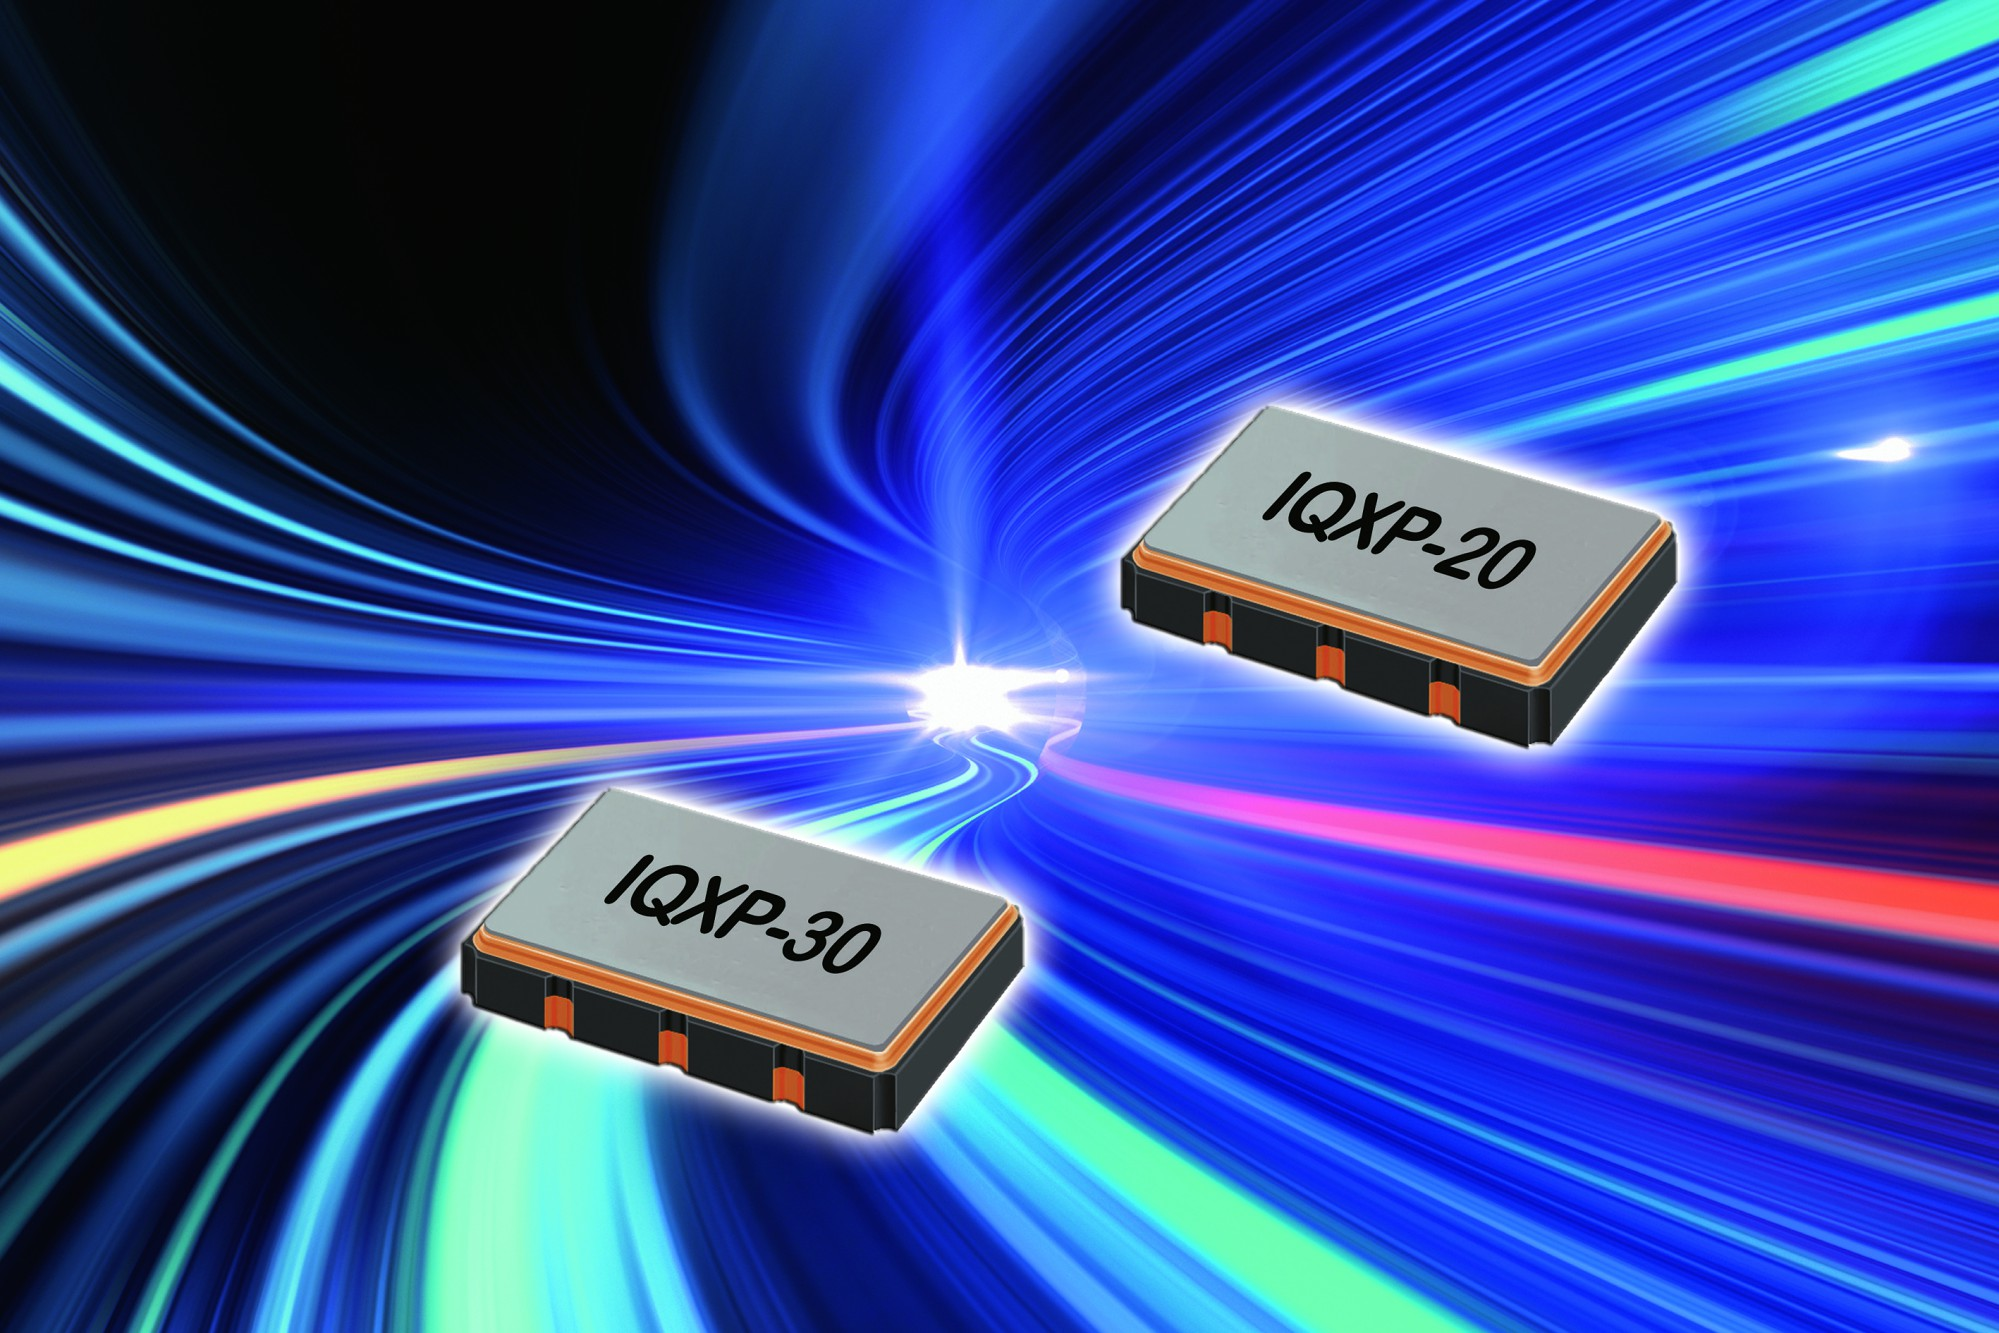 Fast make programmable oscillators with class leading phase jitter performance